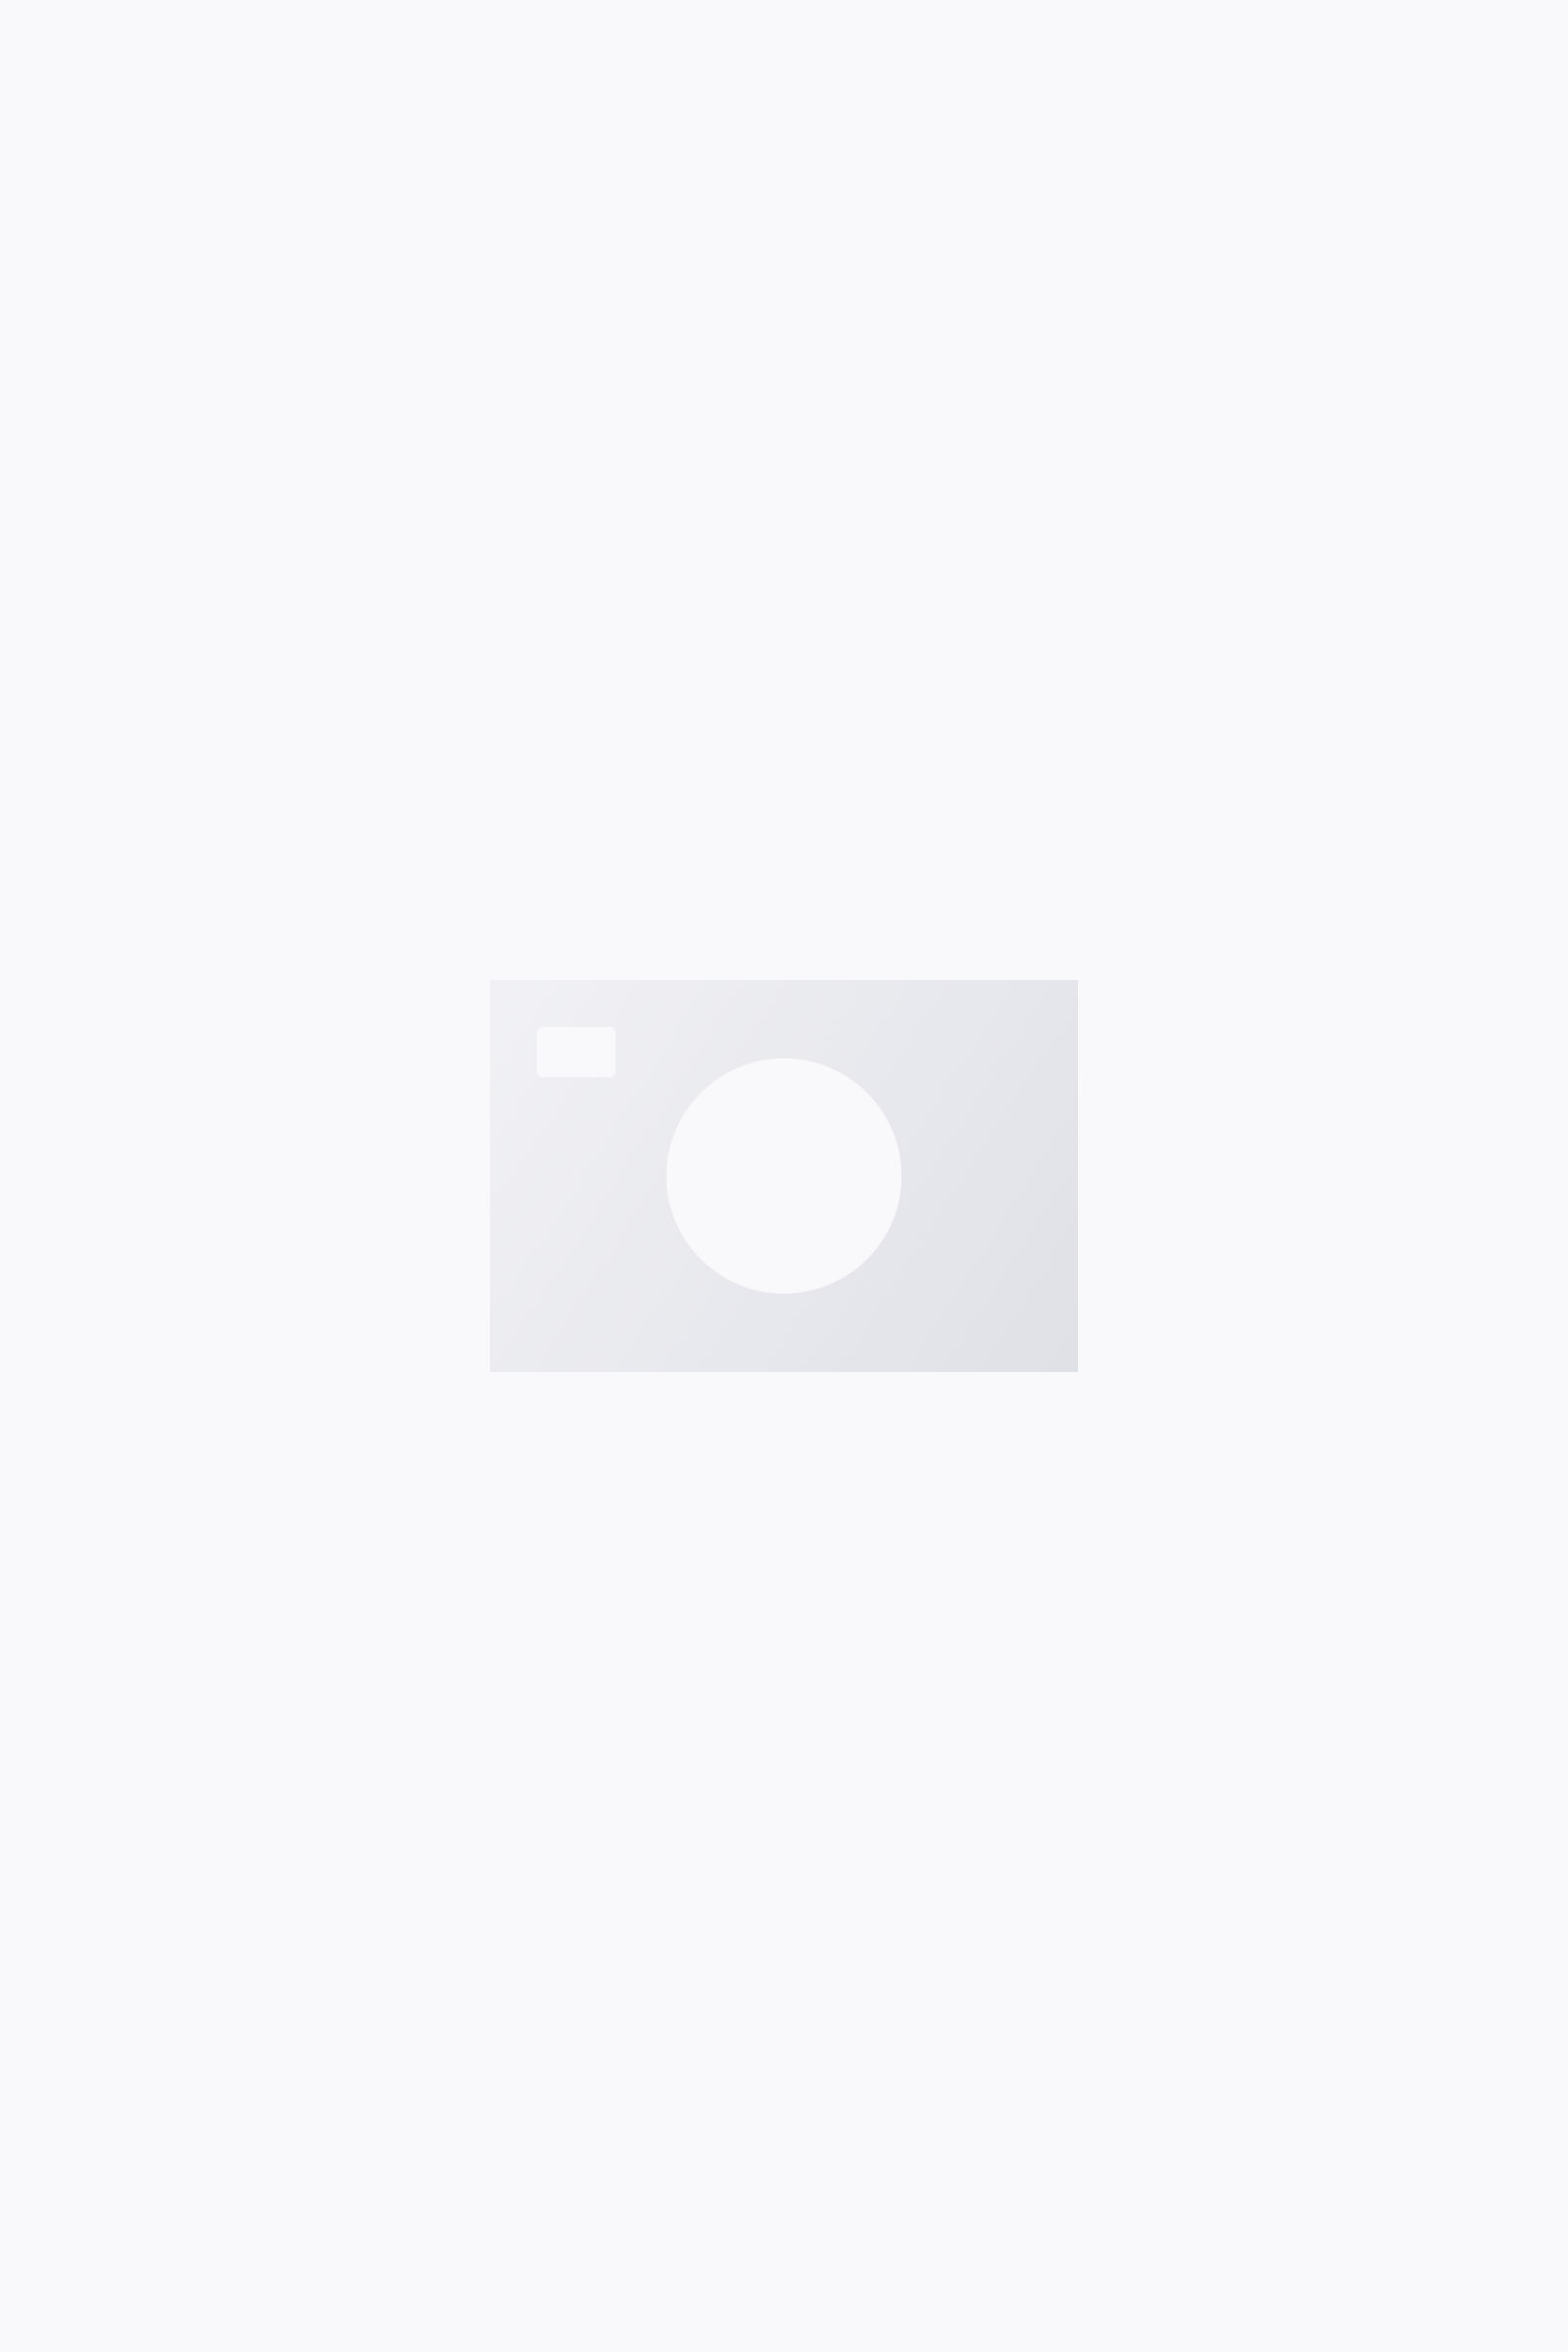 COS REGULAR-FIT PATCH-POCKET T-SHIRT,White